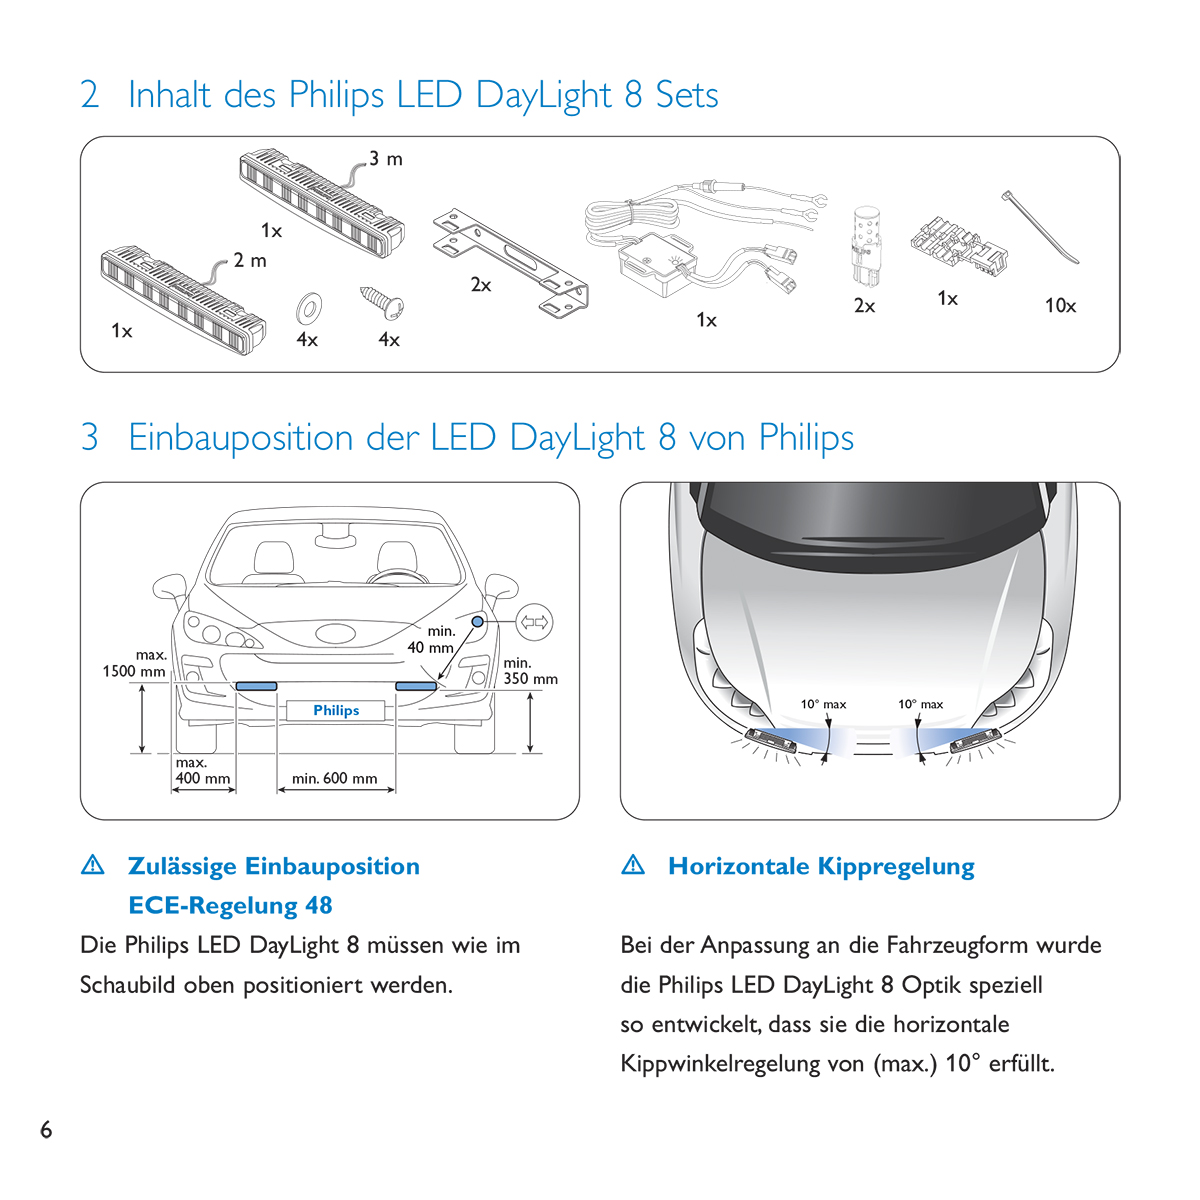 Philips LED DayLight 8 user guide - Inside page - German